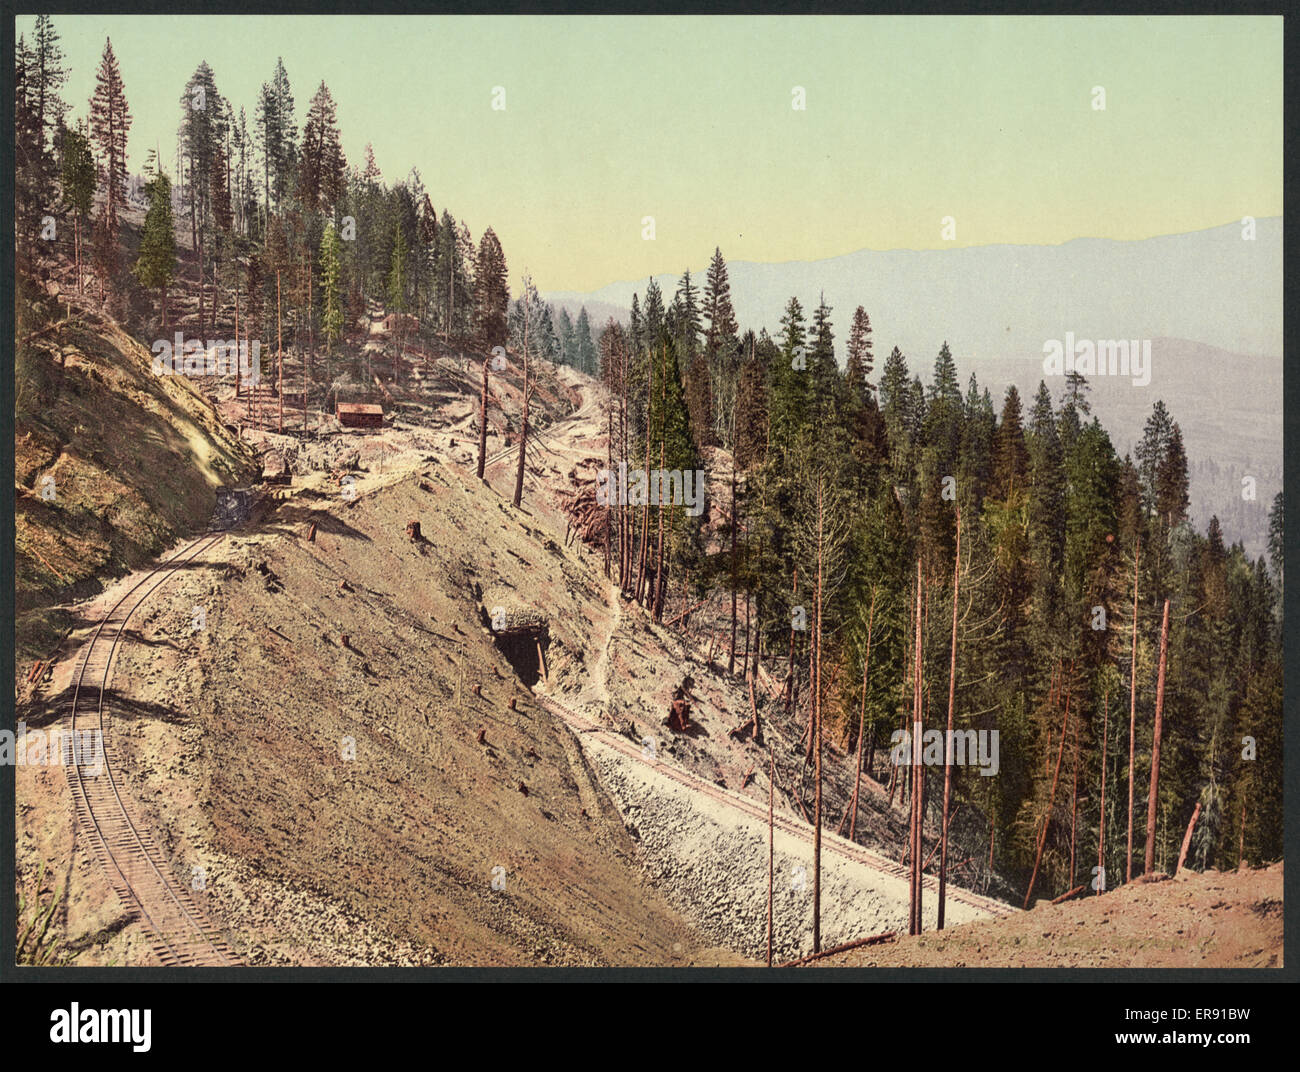 Loop and tunnels, Siskiyou Mountains, California. Date c1900. Stock Photo